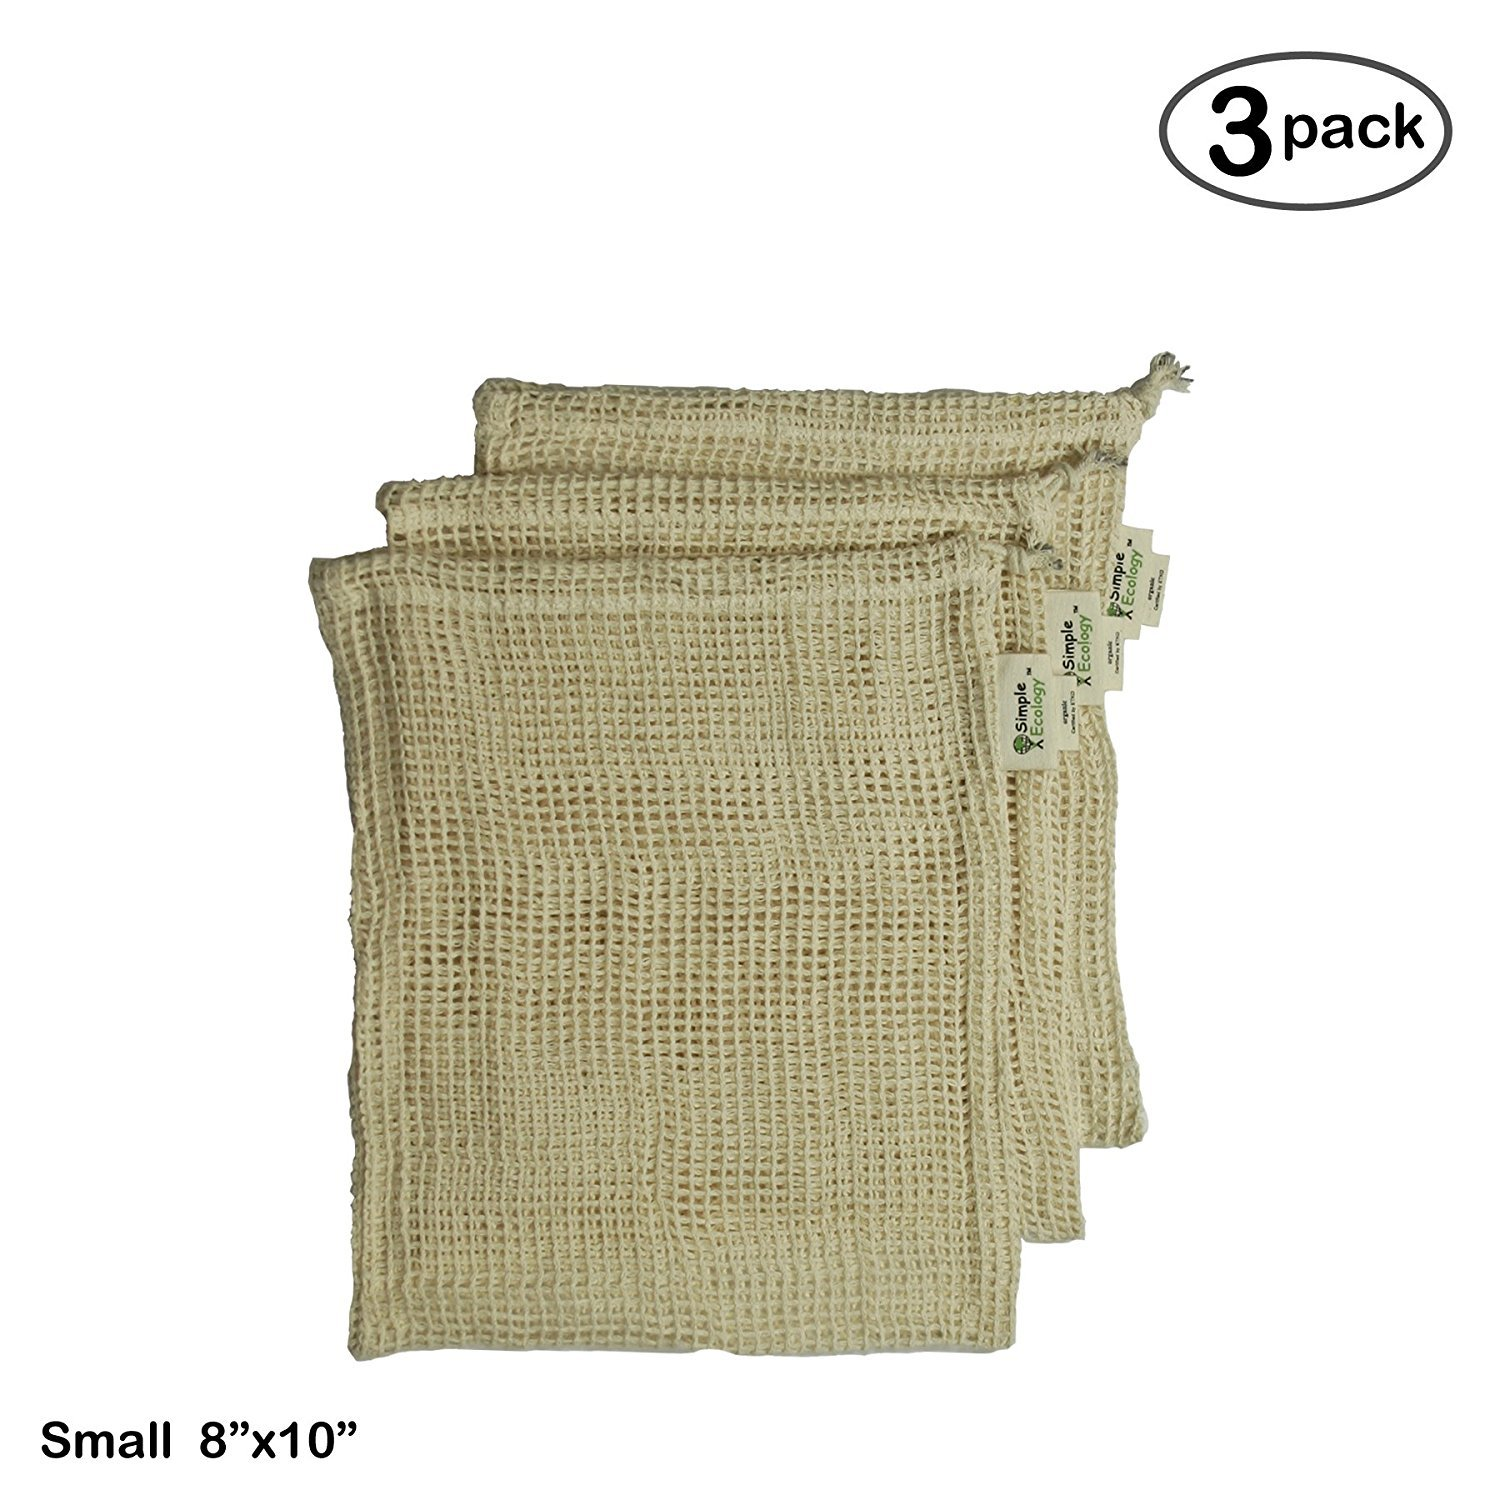 Simple Ecology Organic Cotton Mesh Produce BagSmall by Simple Ecology B01BXII2T8 S (8